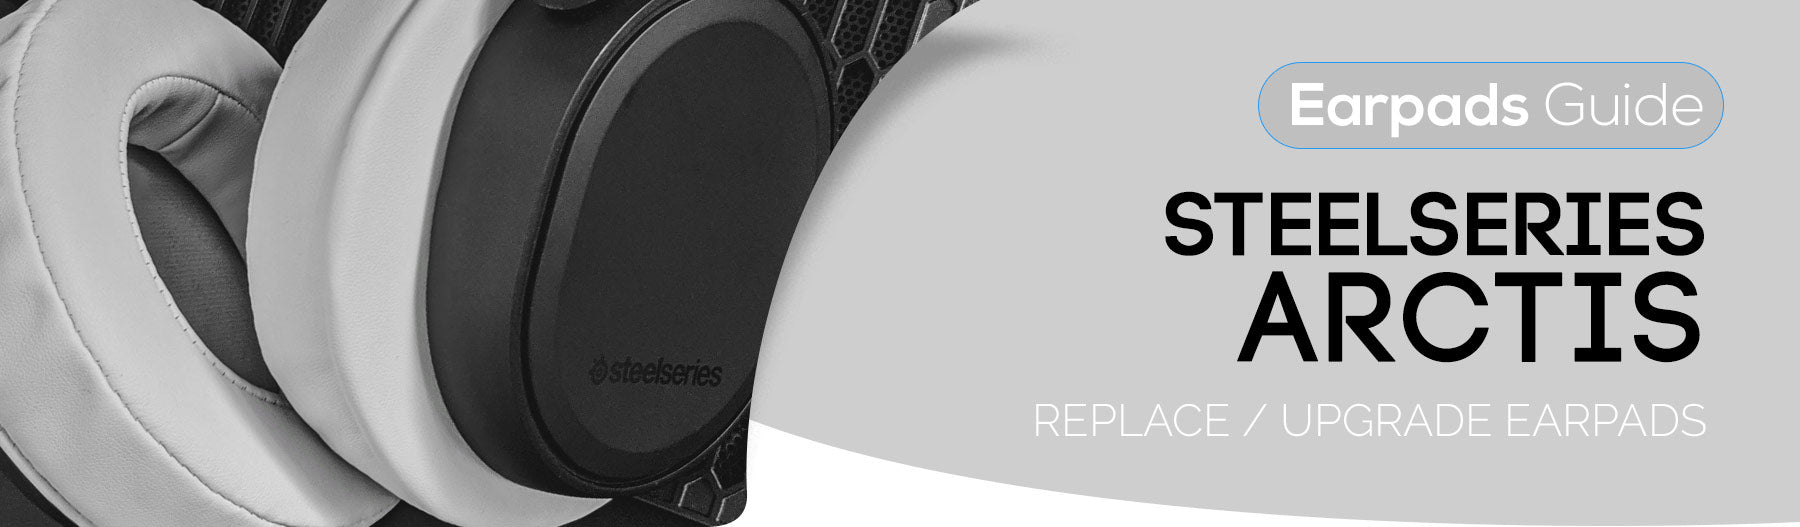 Steelseries Arctis - Best Replacement earpads - so many choices!